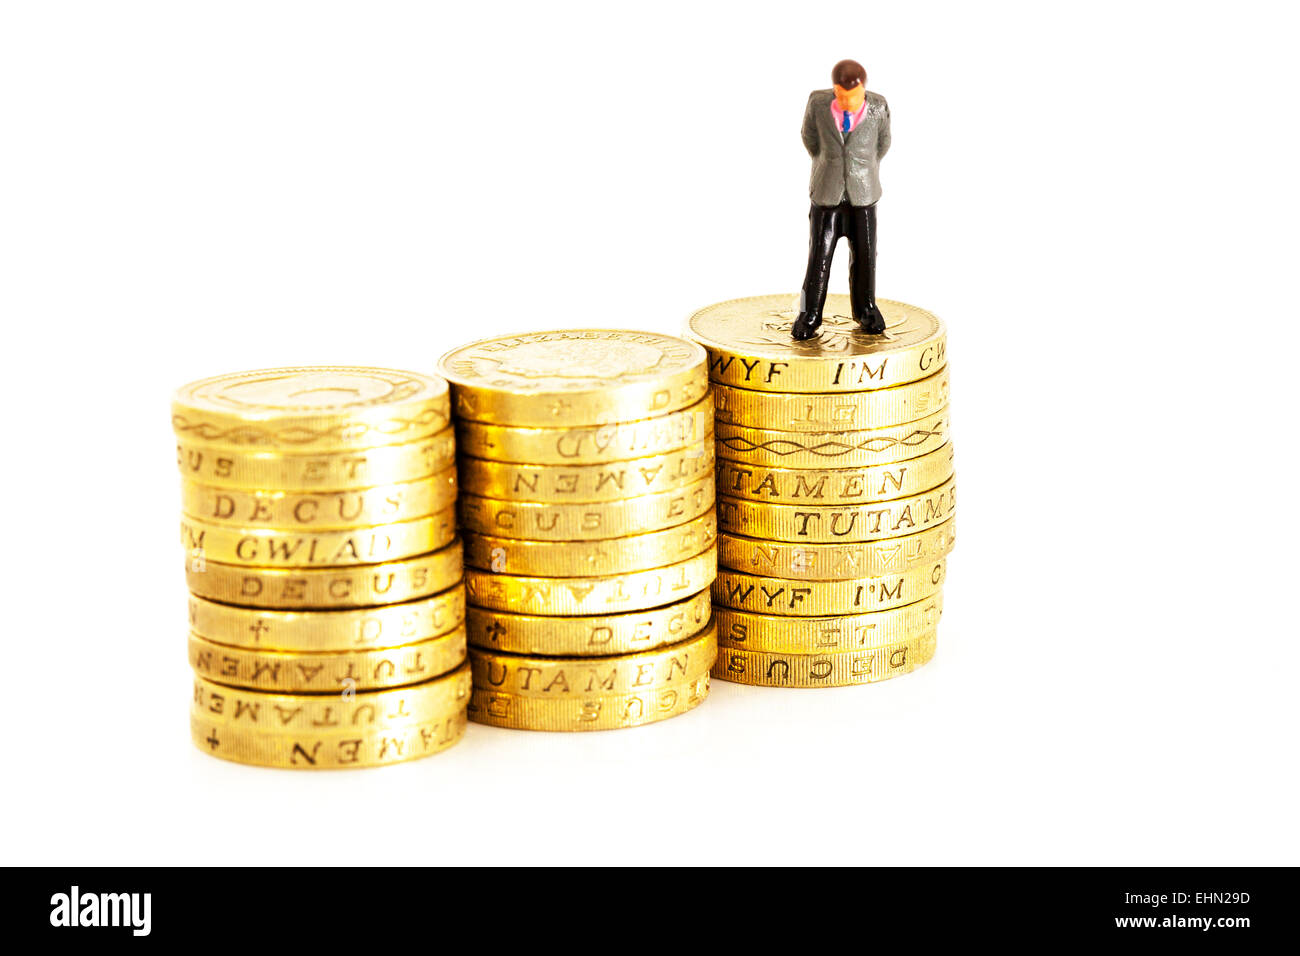 debt debts money worries trouble bankruptcy bankrupt isolated cut out cutout white background pound coins stacks - Stock Image